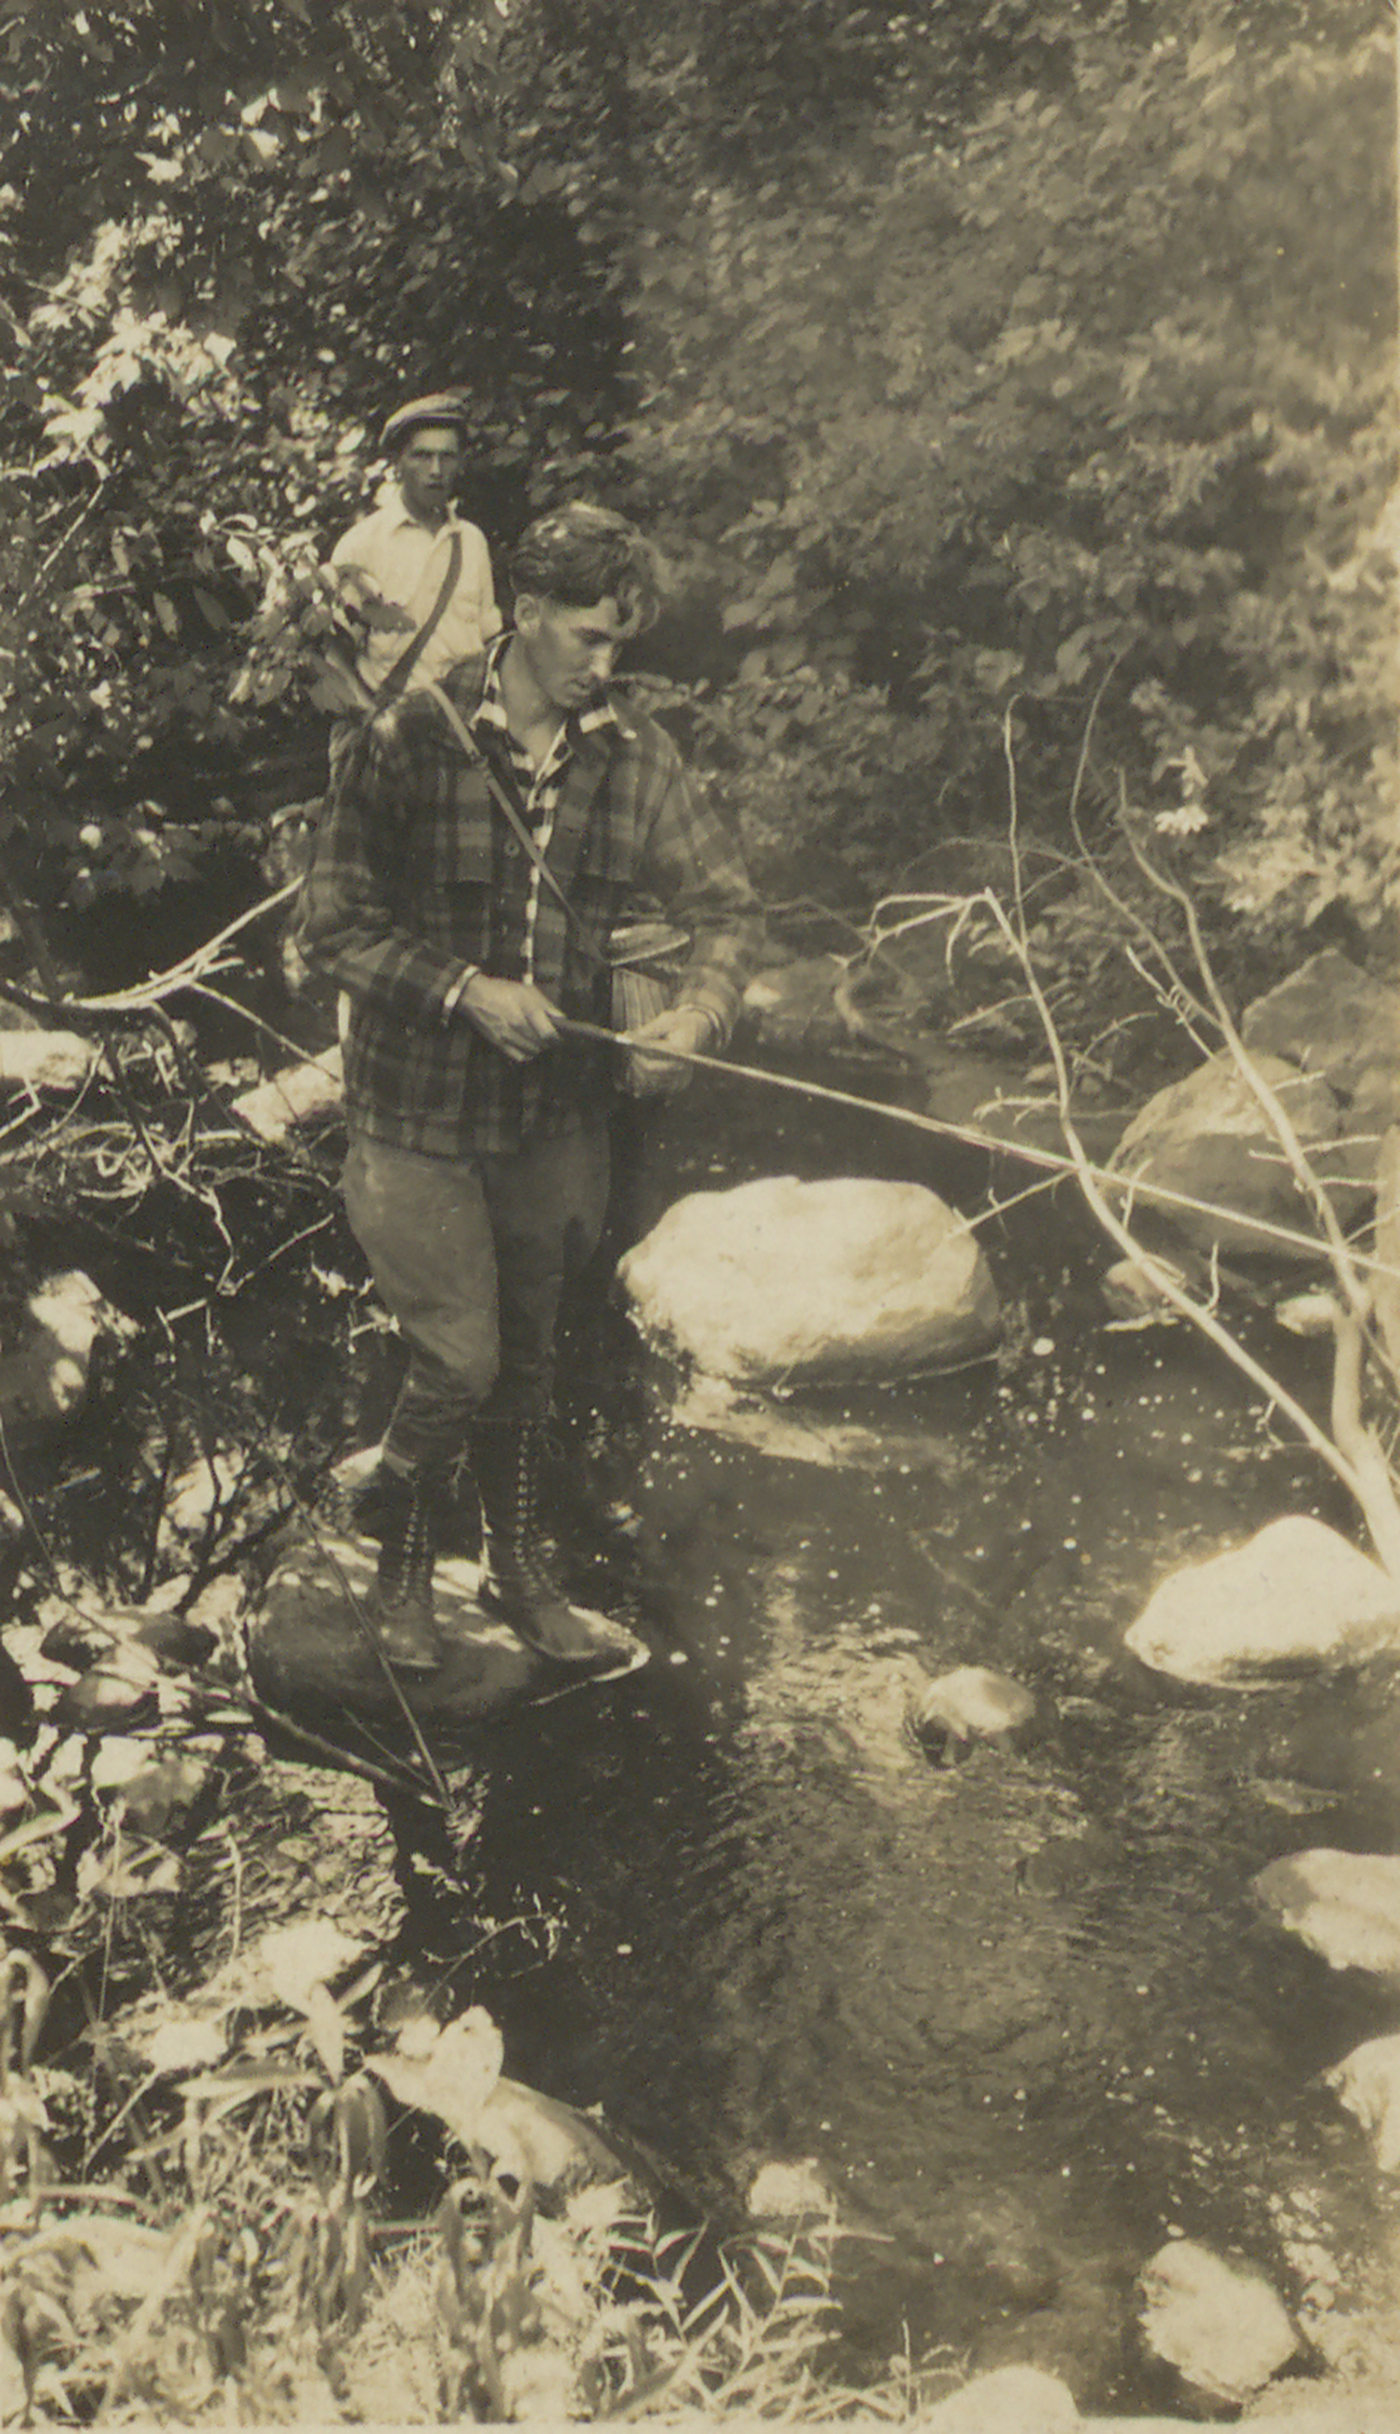 Paul Schaefer and an unidentified man, possibly his brother Vincent, fishing in a stream, circa 1930. Paul stands on a rock in the stream holding a fishing rod and a fishing basket wearing a plaid hunting jacket.  The unidentified man is standing behind him wearing a white shirt and a newsboy hat.